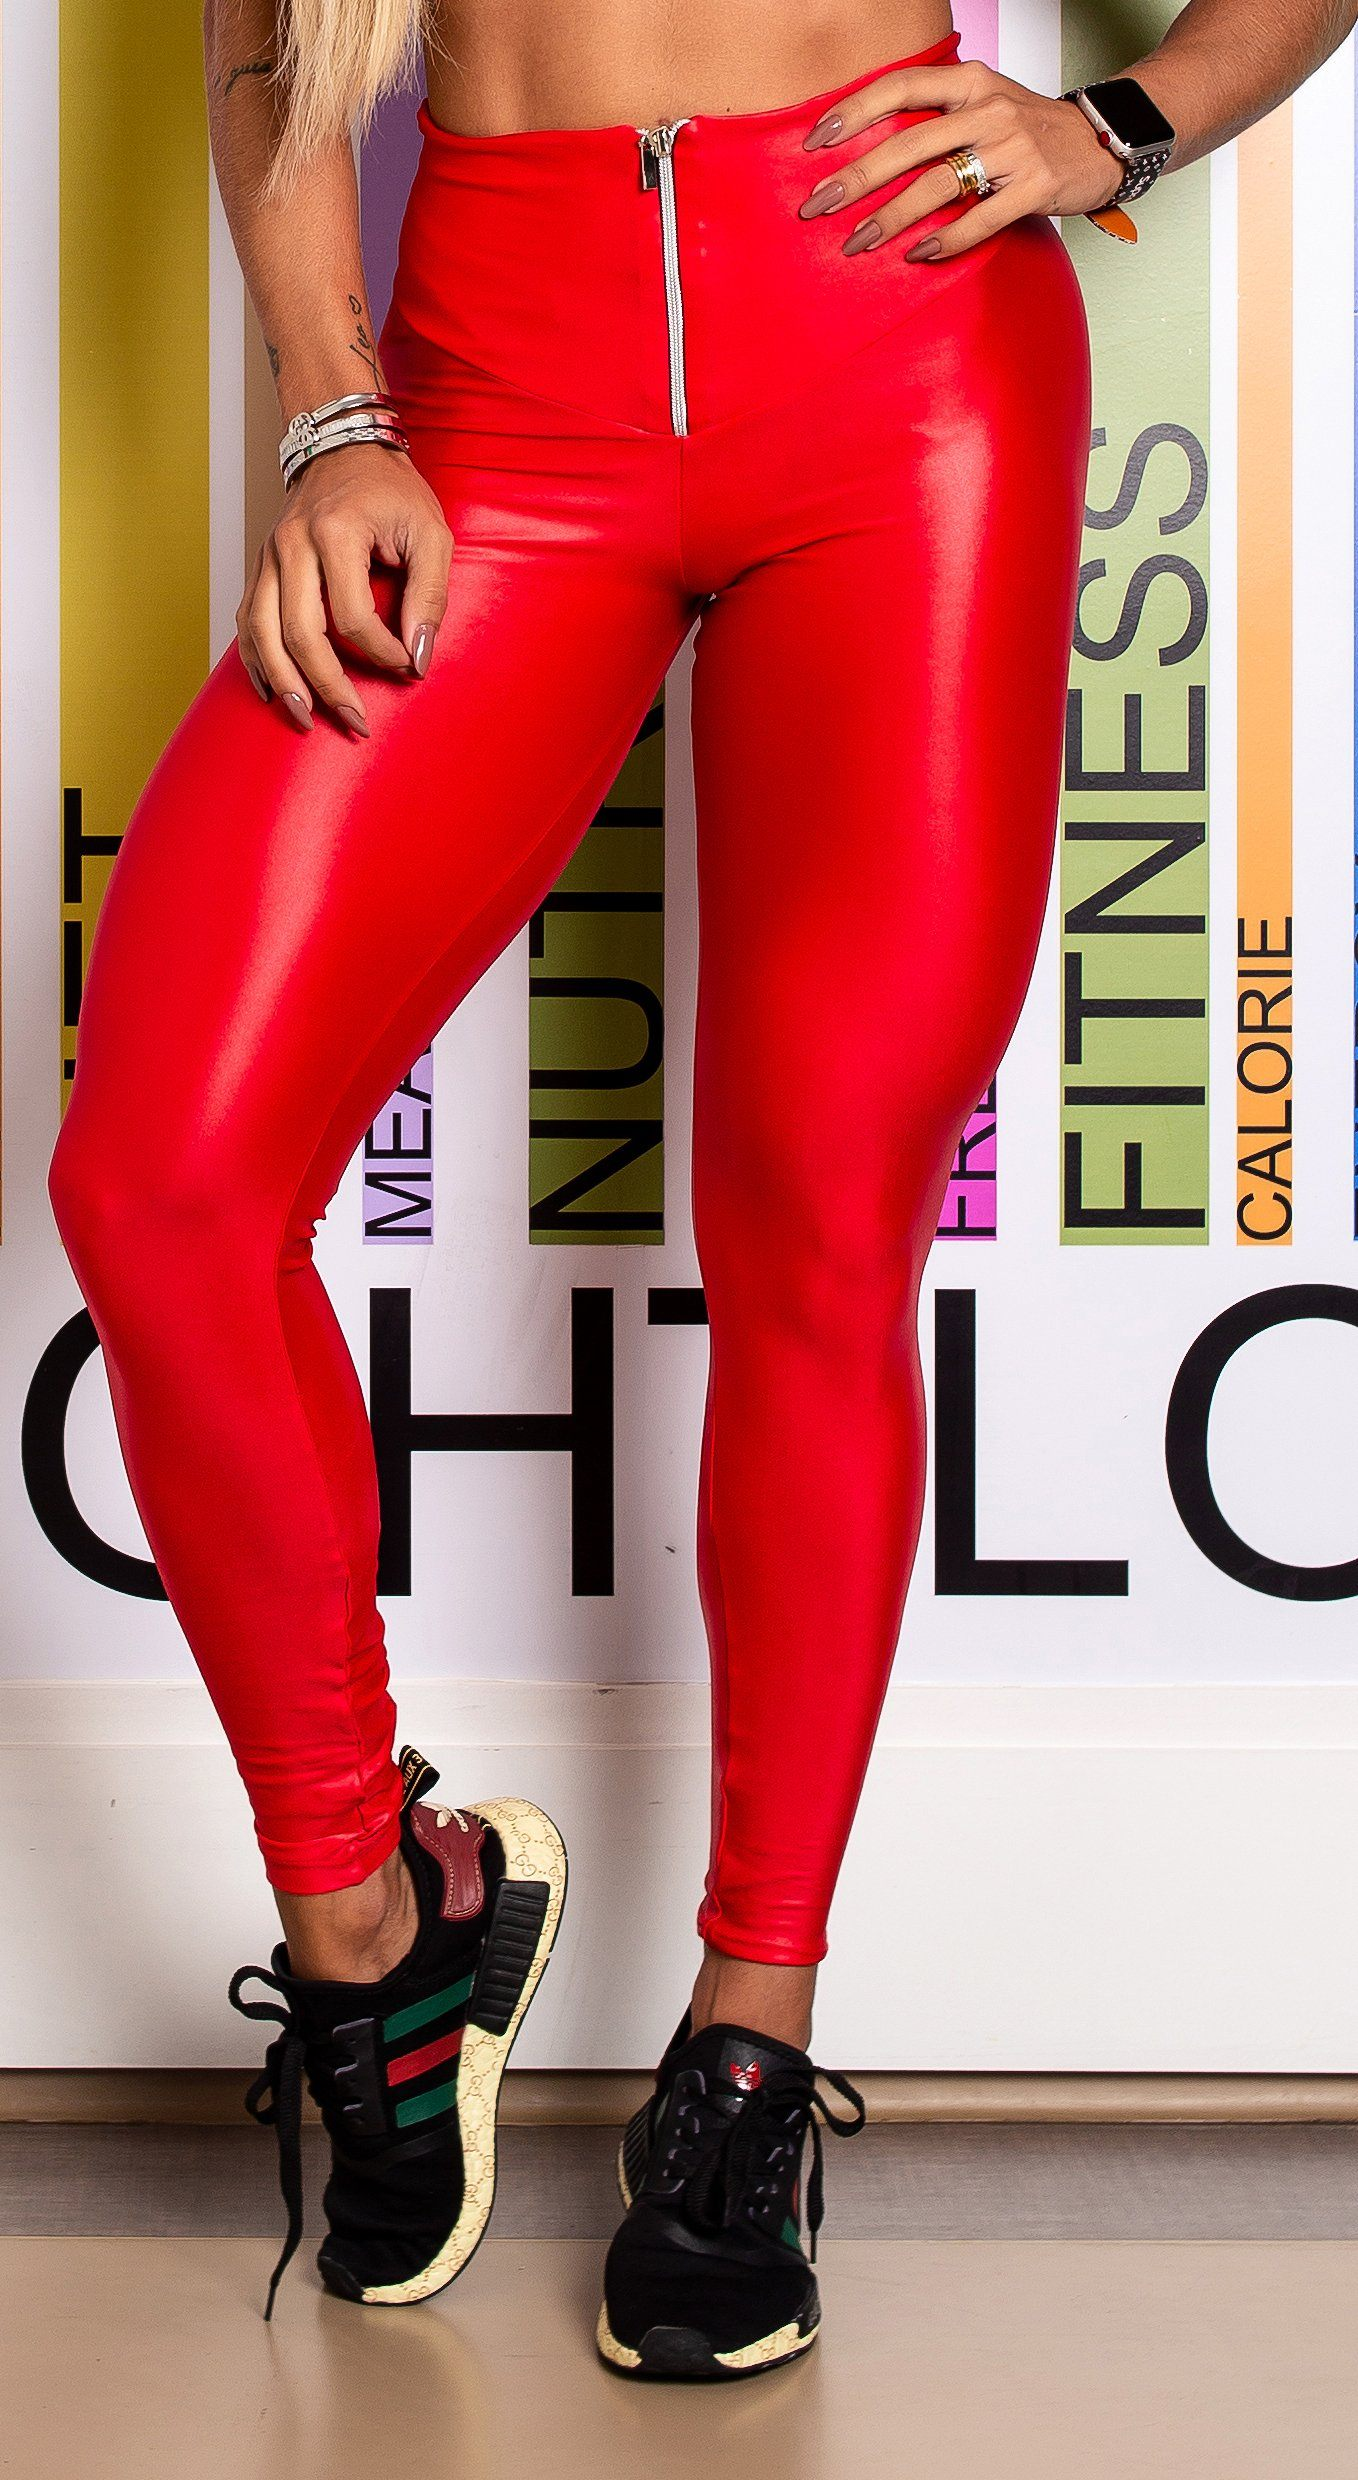 Brazilian Workout Legging - High Waist Scrunch Booty Latex Look Red